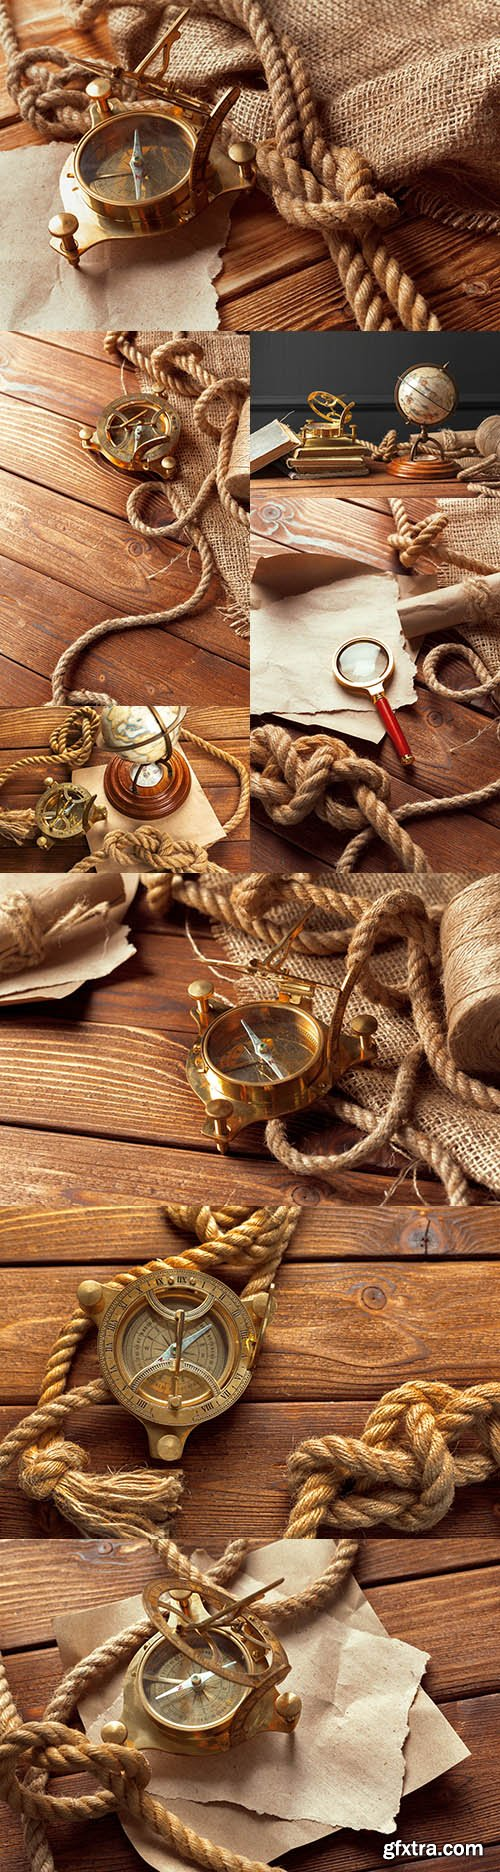 Antique things compass, rope and maps for travel